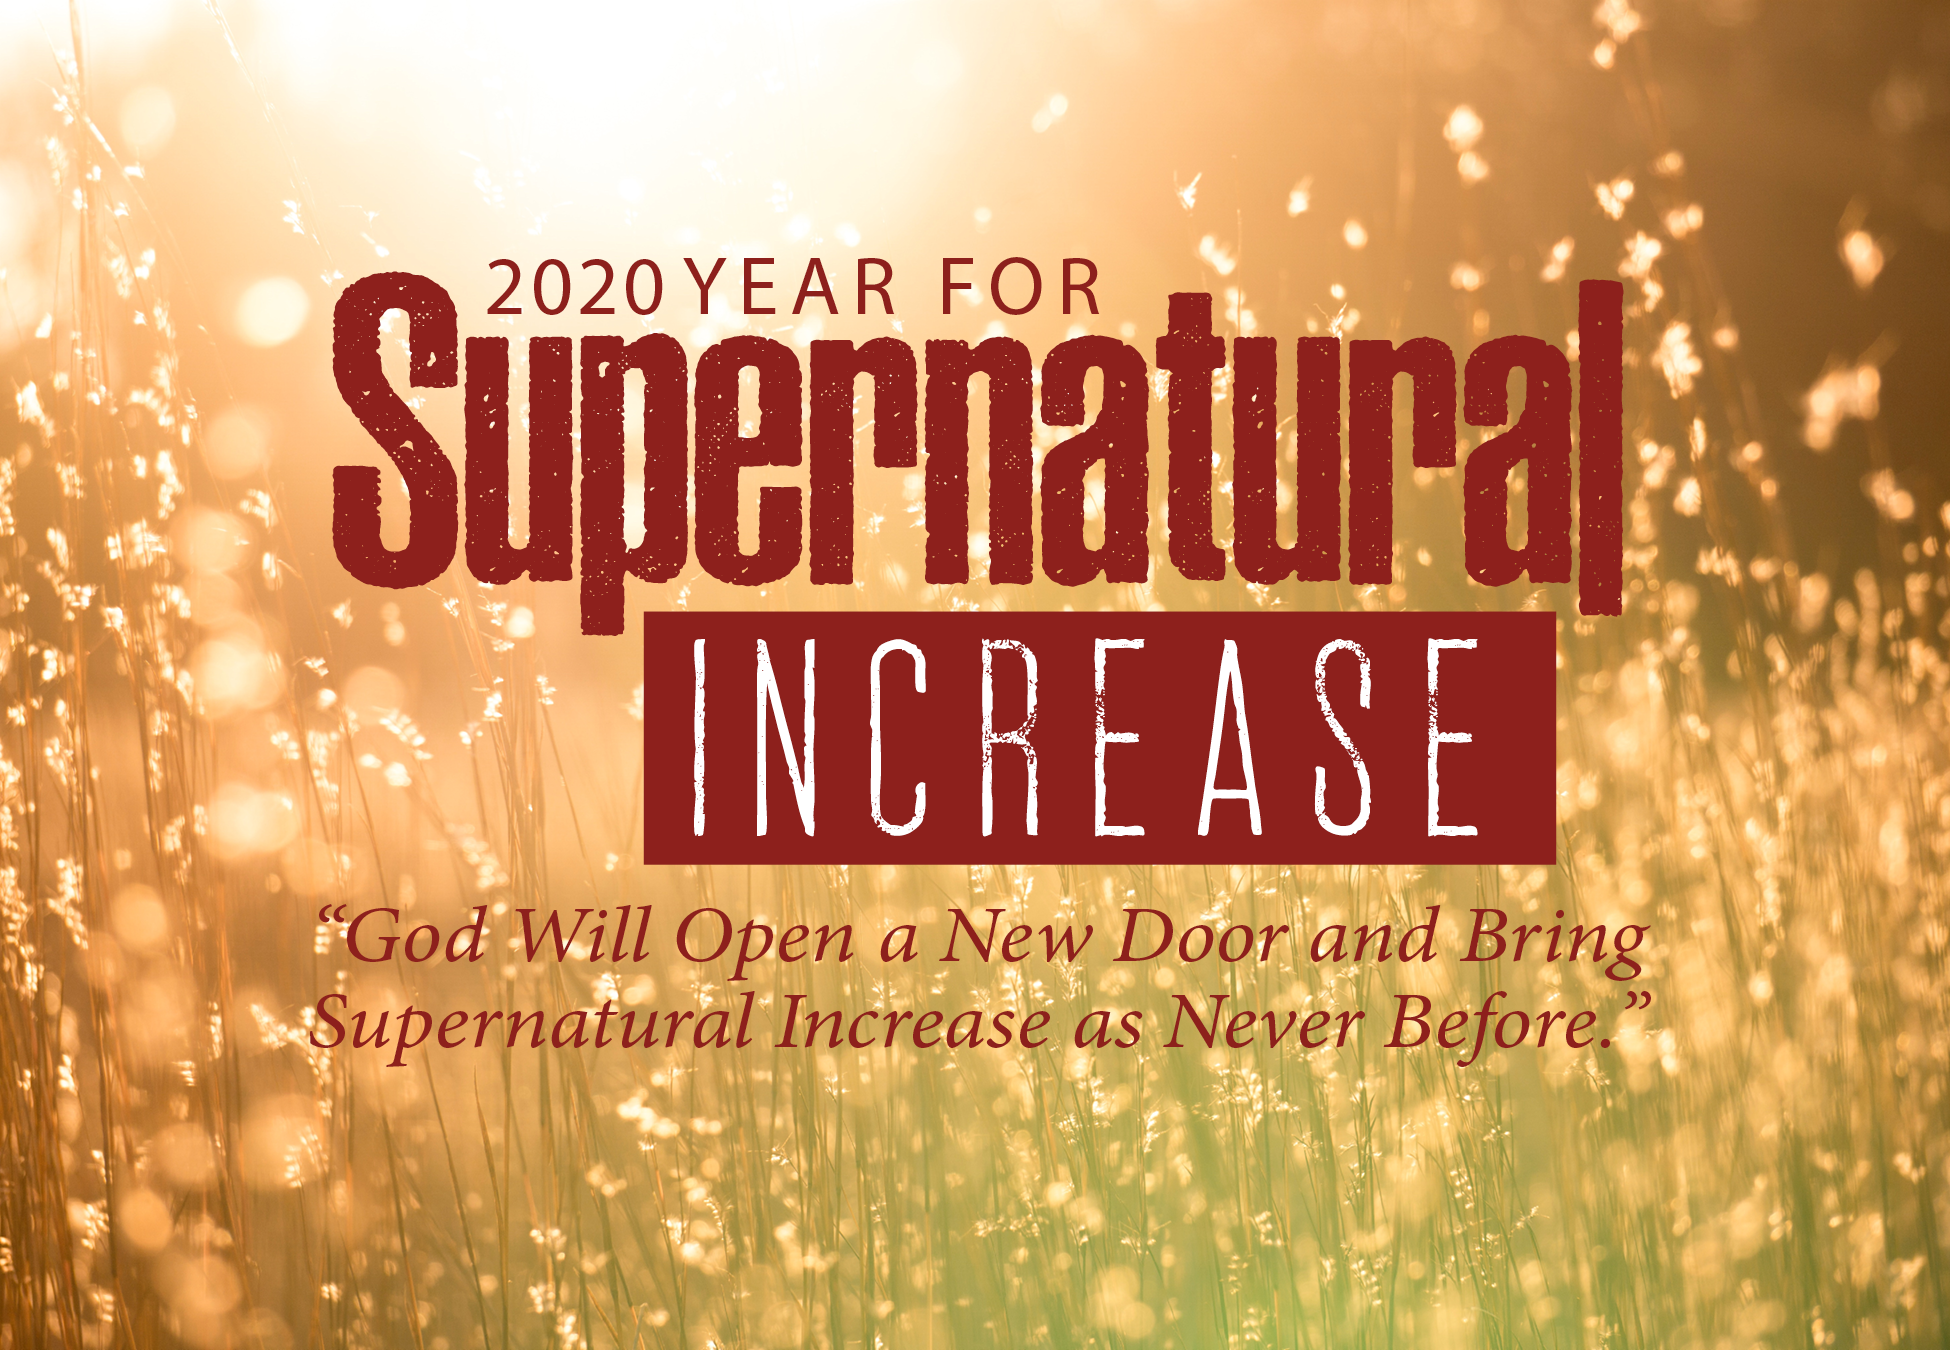 2020 – Year for Supernatural Increase